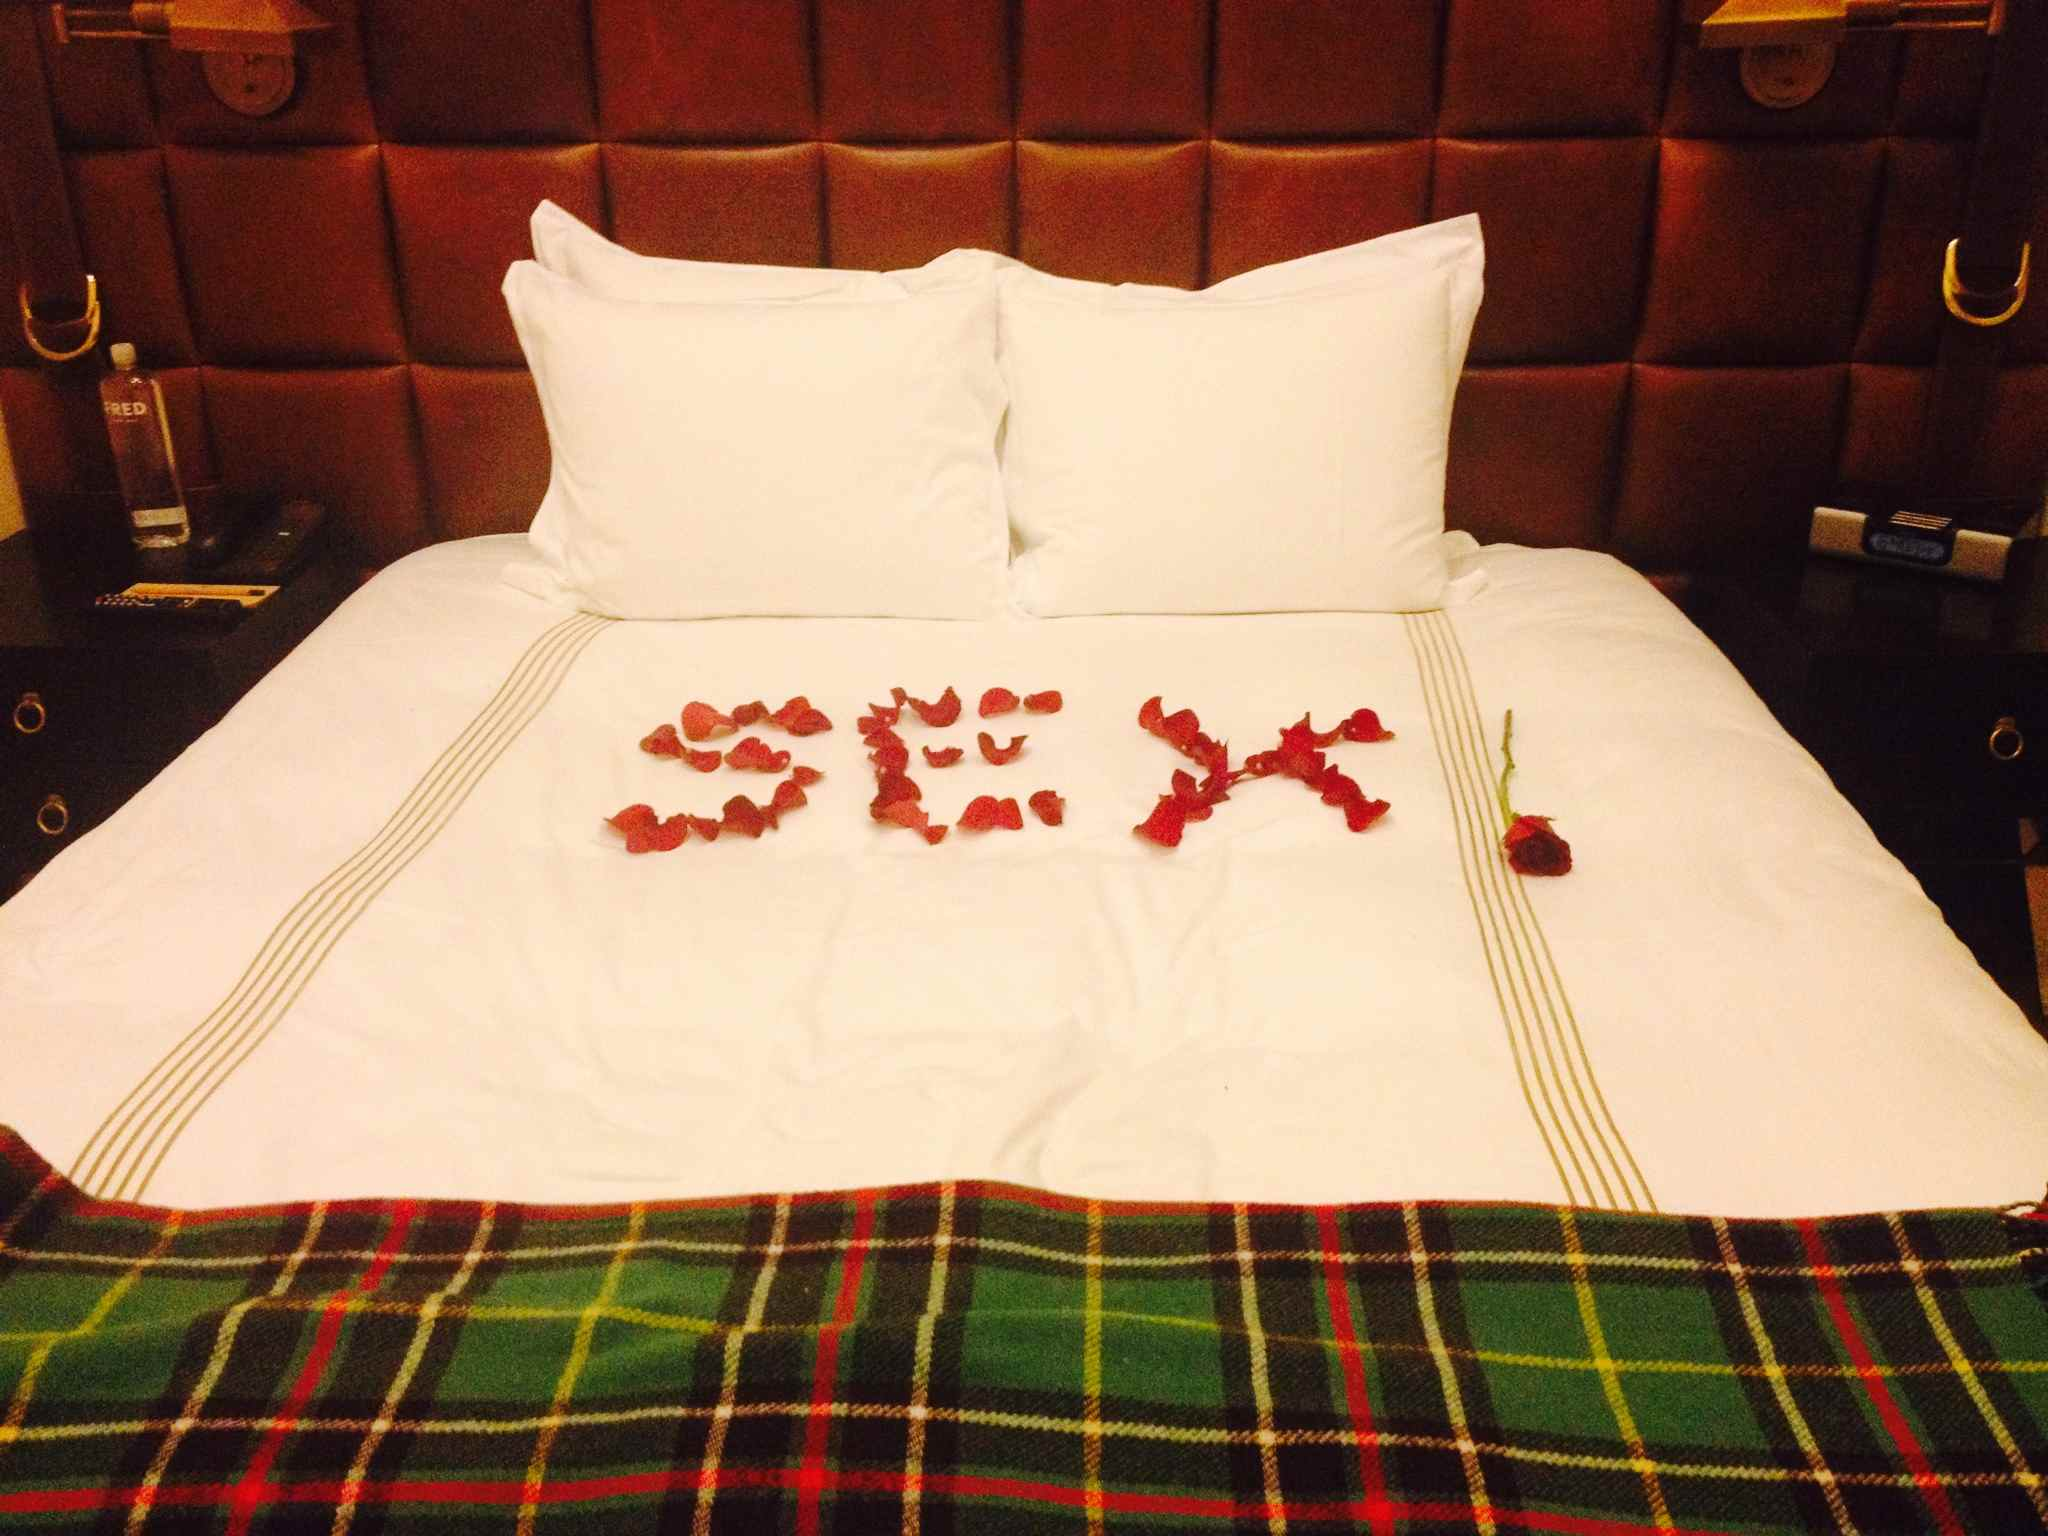 guy has hotel staff write romantic message in rose petals